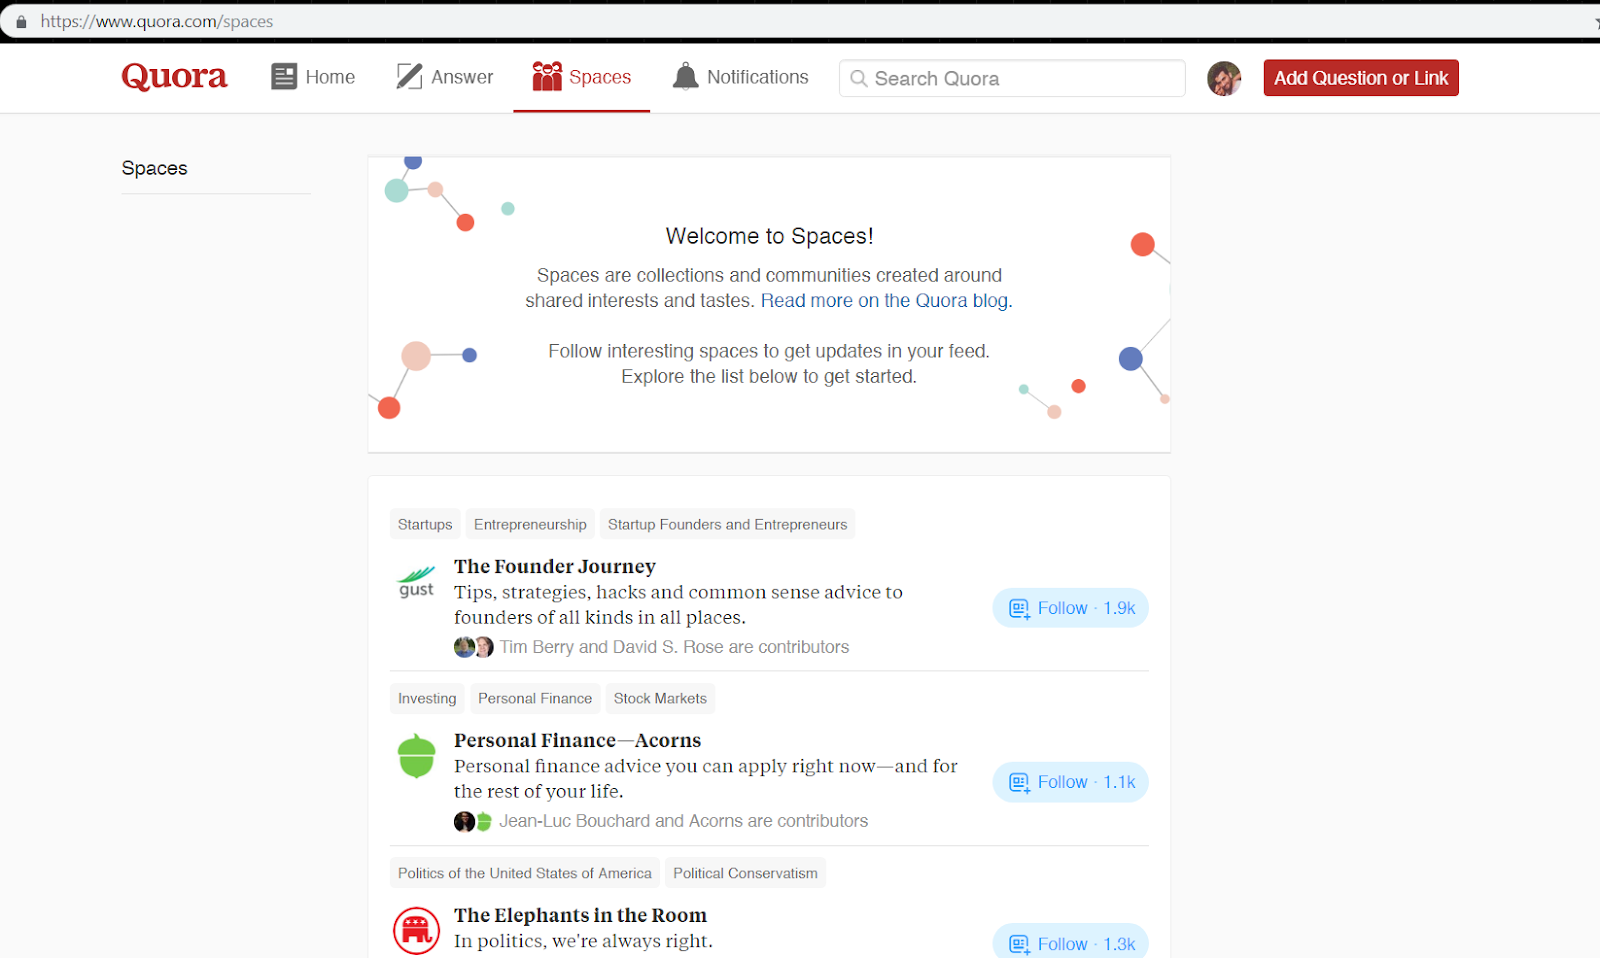 Spaces: The New Quora Feature Everyone is Talking About